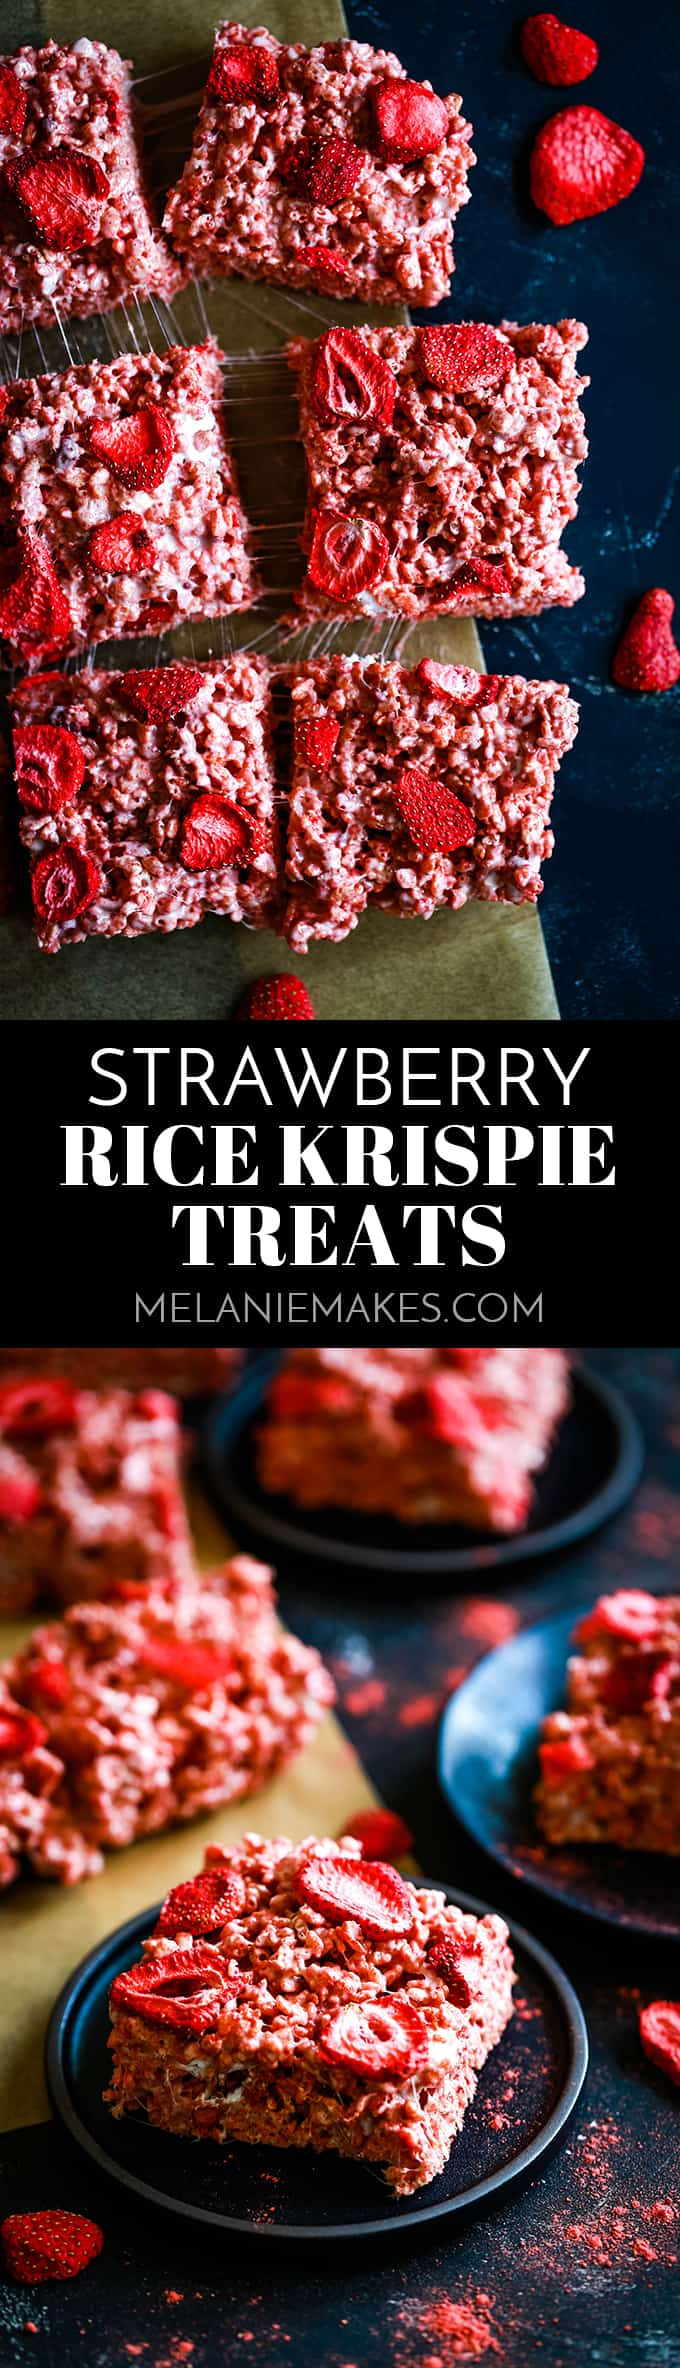 These Strawberry Rice Krispie Treats have three layers of strawberry flavor and take just 10 minutes to prepare. The perfect springtime treat! #strawberry #ricekrispietreats #nobake #desserts #easyrecipe